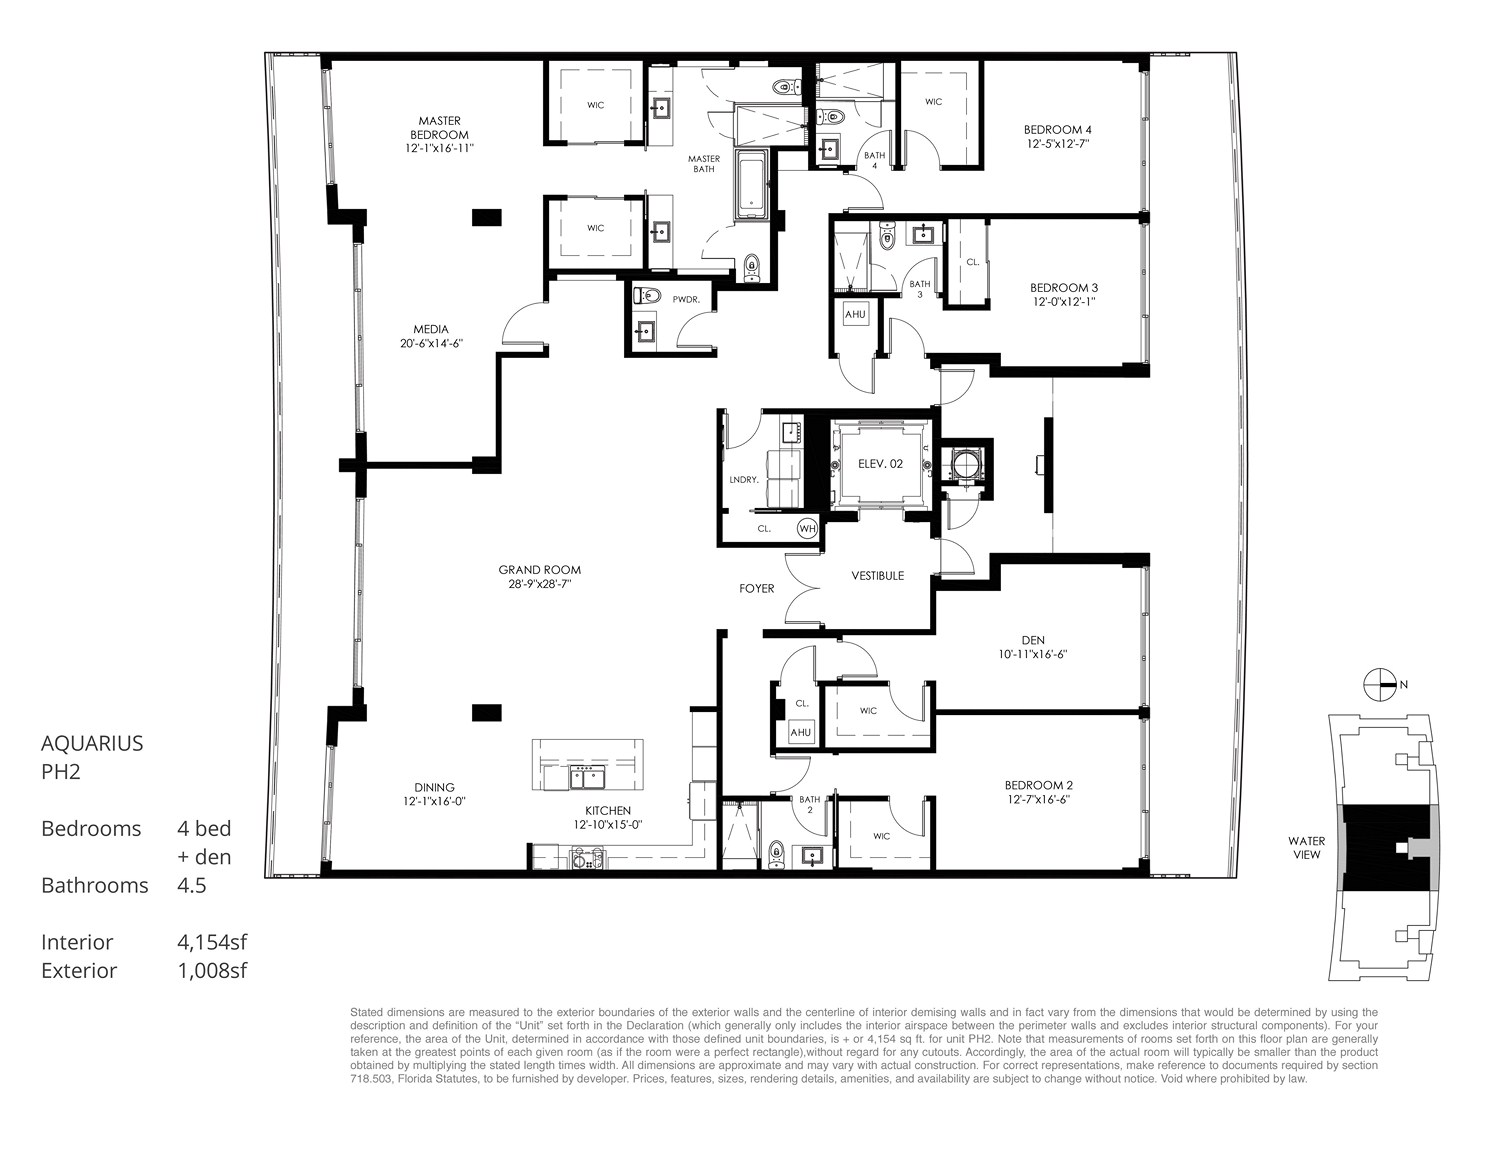 Aquarius 15 - Floorplan 8